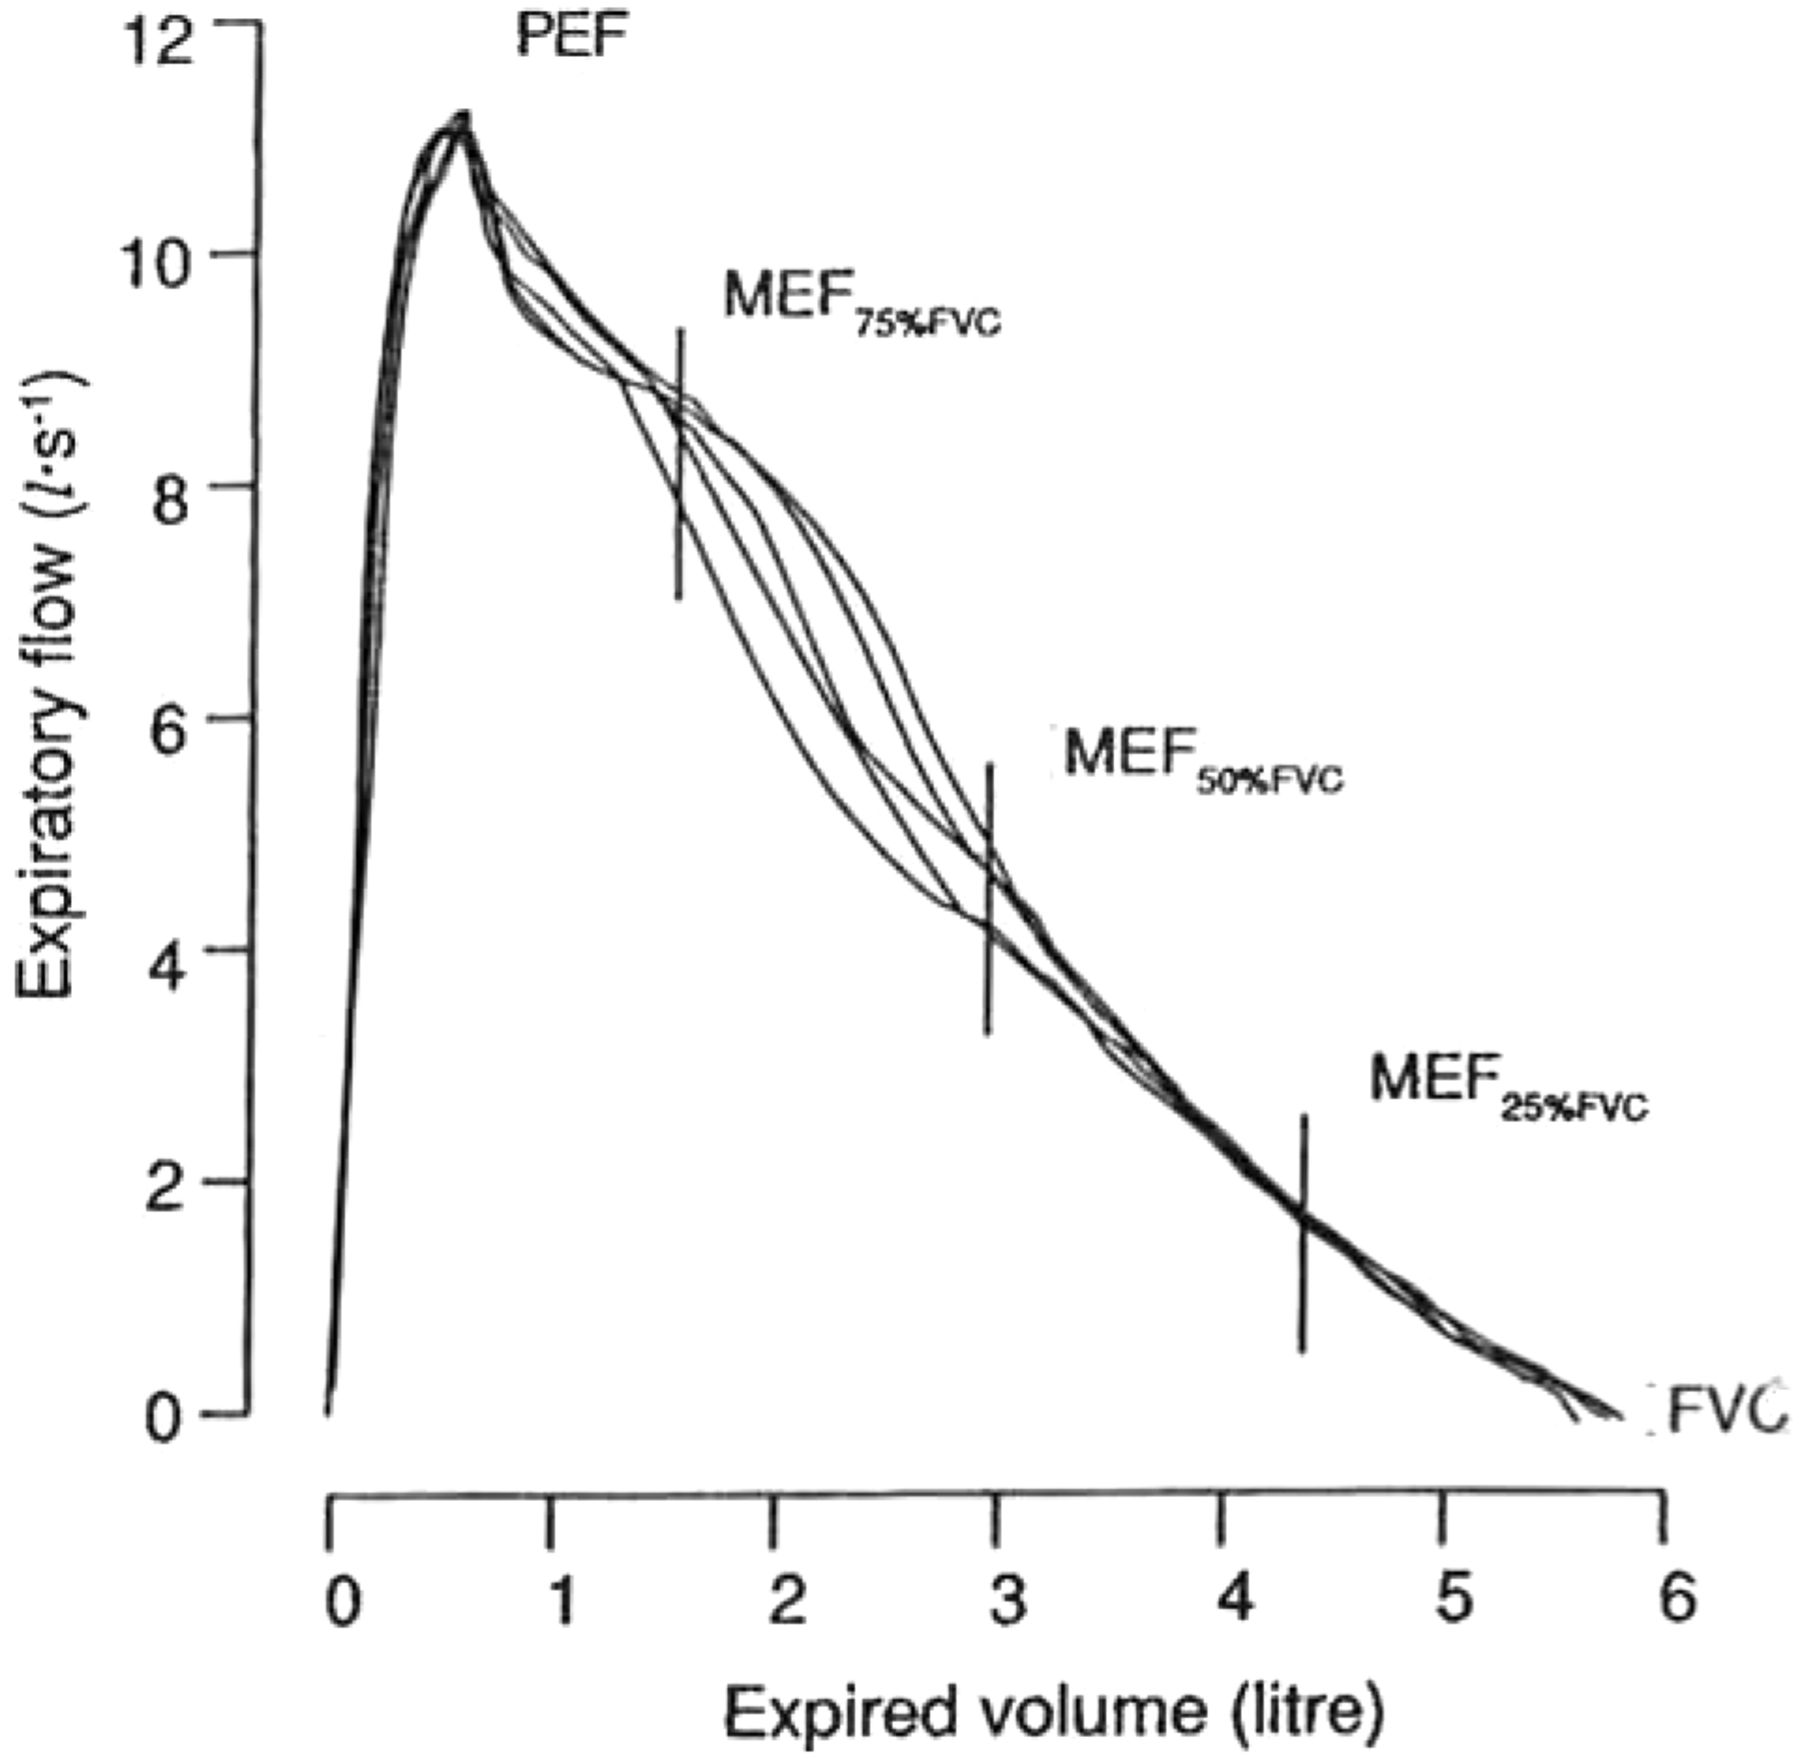 Lung Volumes And Forced Ventilatory Flows European Respiratory Society